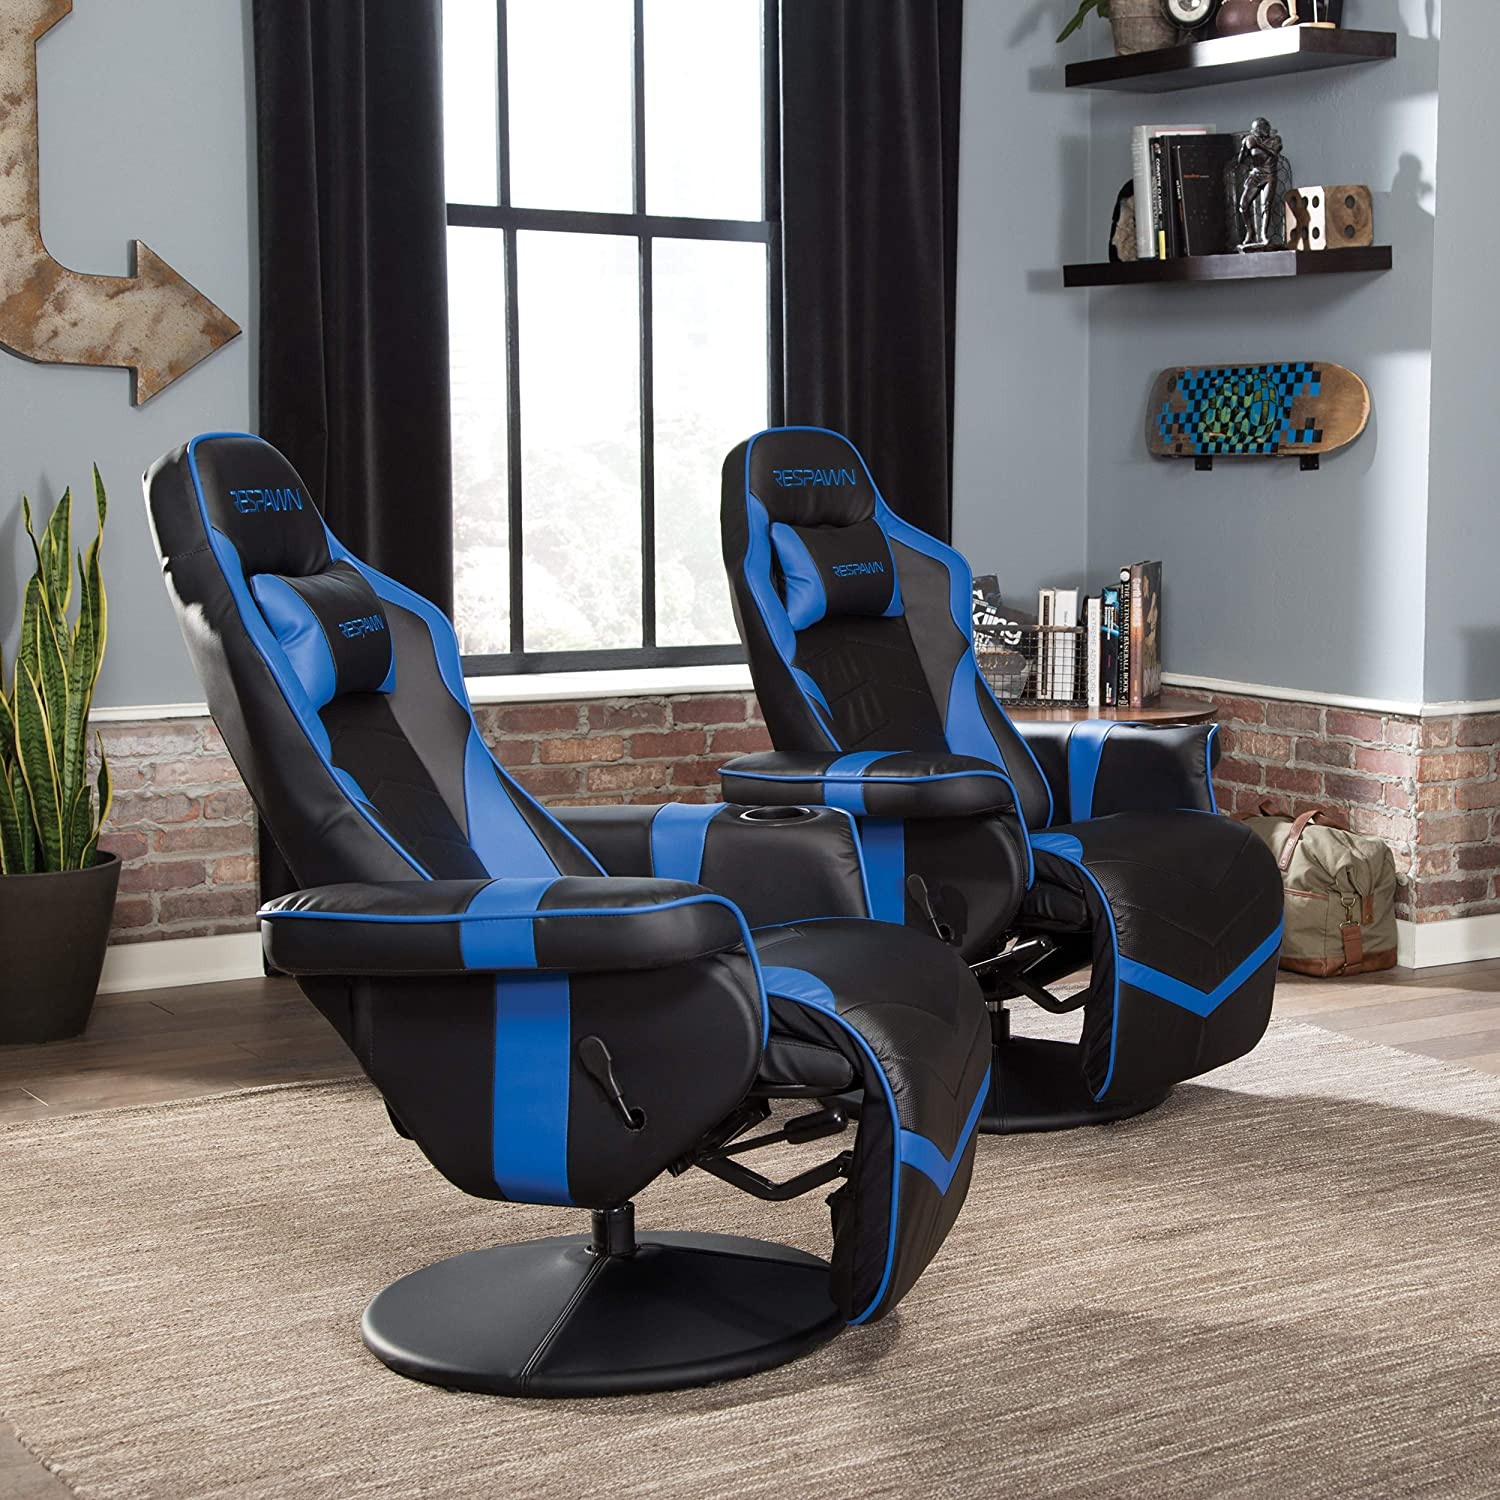 gaming chair with cup holder